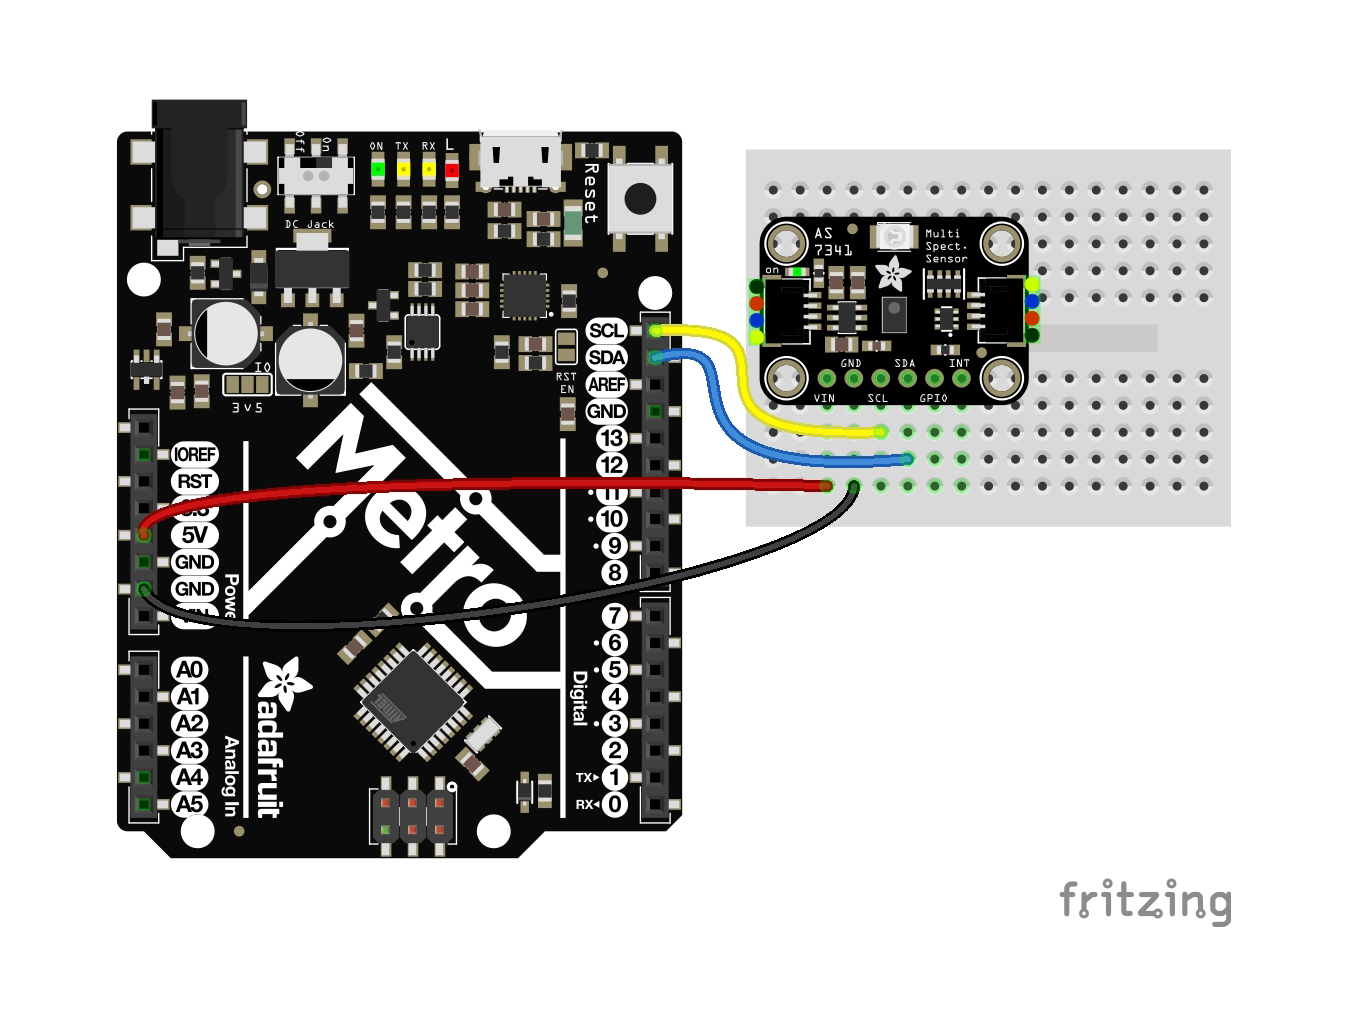 adafruit_products_AS7341_Arduino_breadboard_bb.jpg